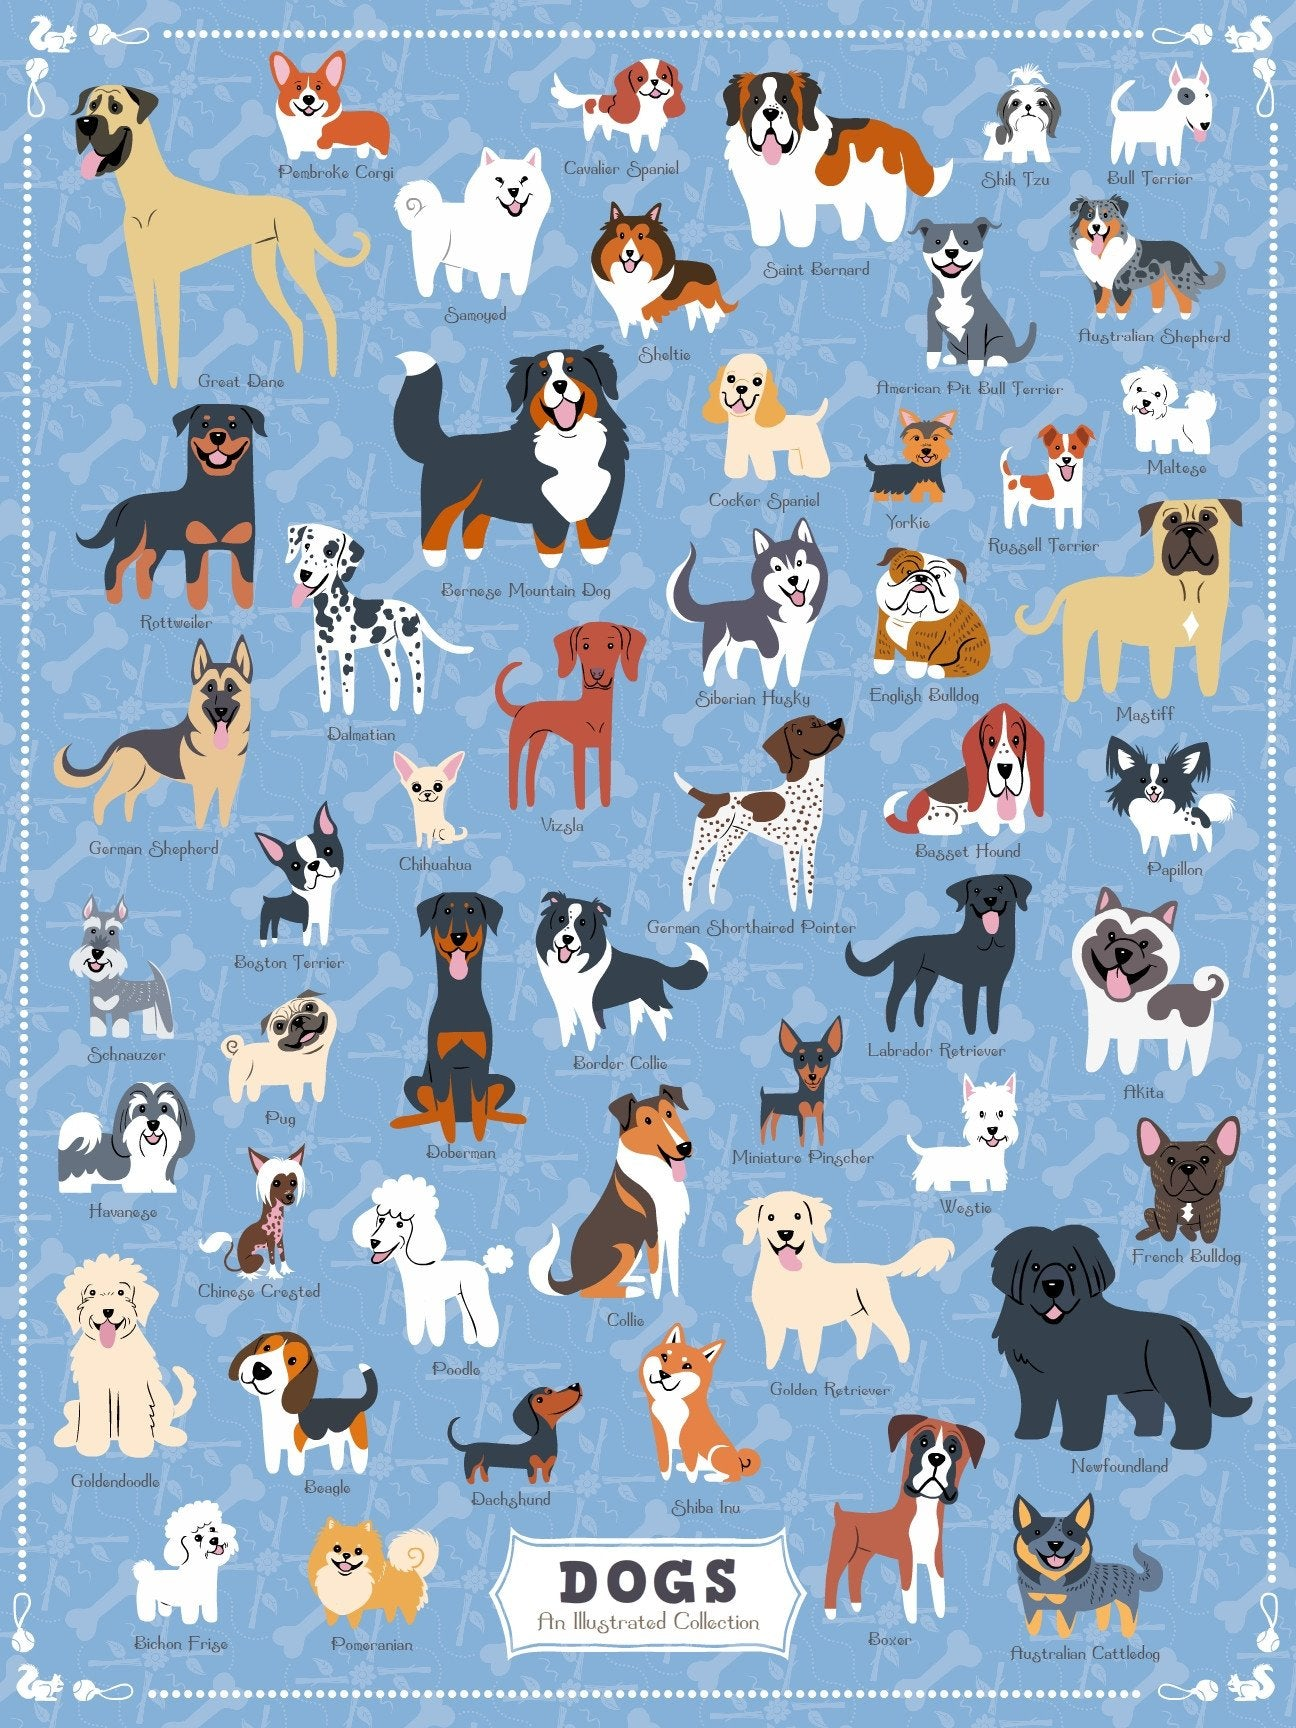 Buy Dogs of America, 500 Piece Jigsaw Puzzle from Walking Pants Curiosities, the Most un-General Gift Store in Downtown Memphis, Tennessee!